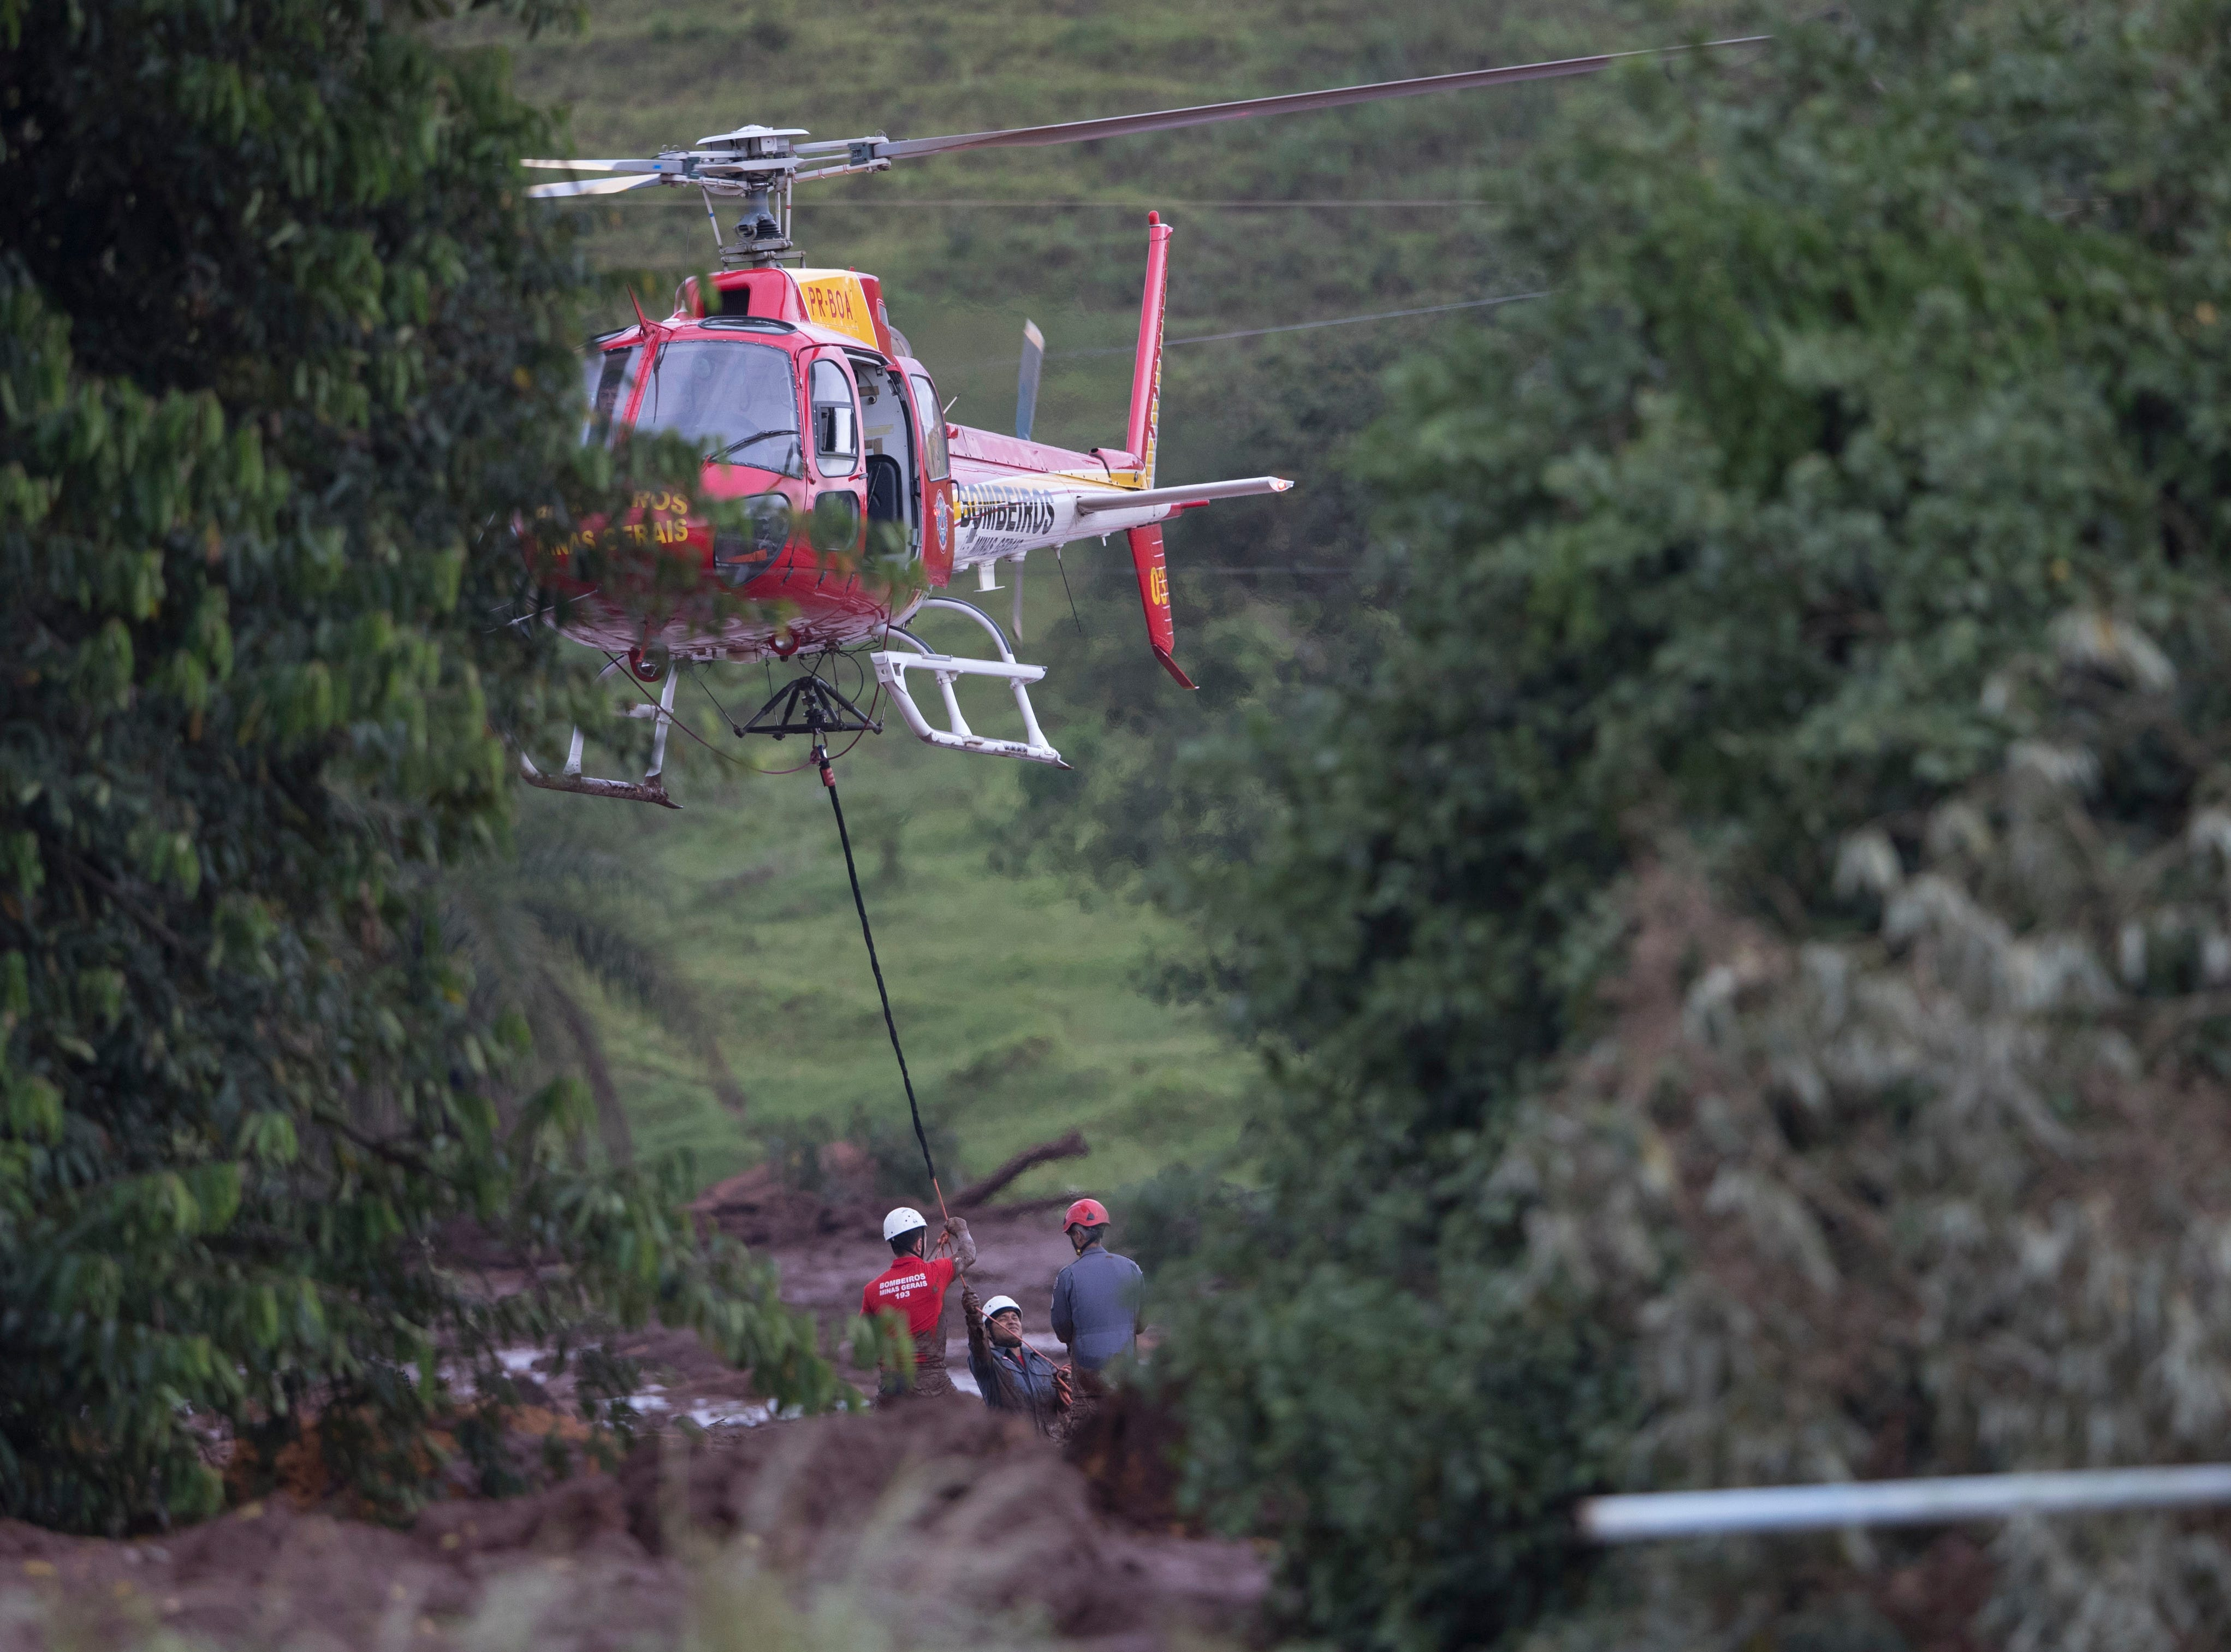 Firefighters prepare to lift, with a helicopter, a body rescued from the mud, after a dam collapse near Brumadinho, Brazil, Saturday, Jan. 26, 2019.